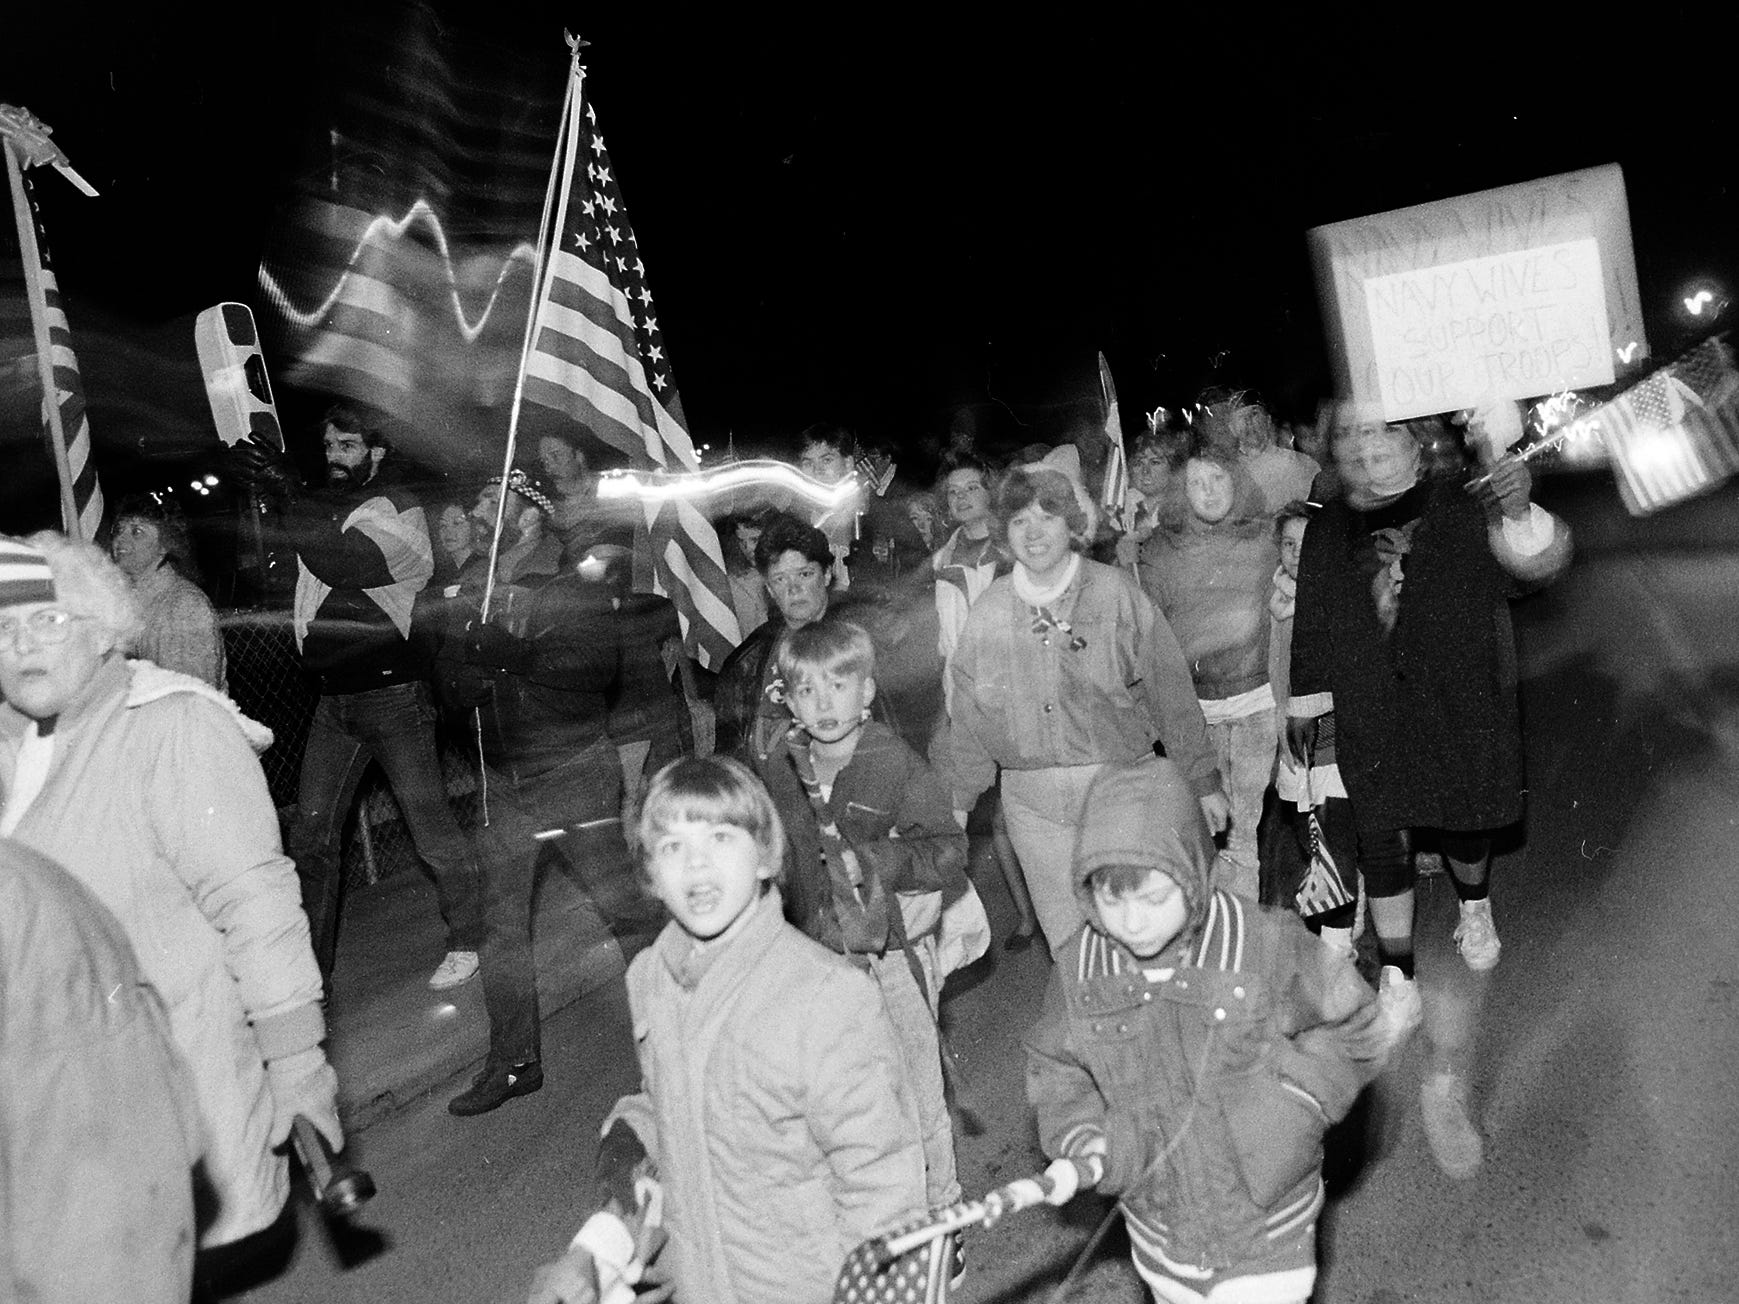 01/26/91Poulsbo Rally